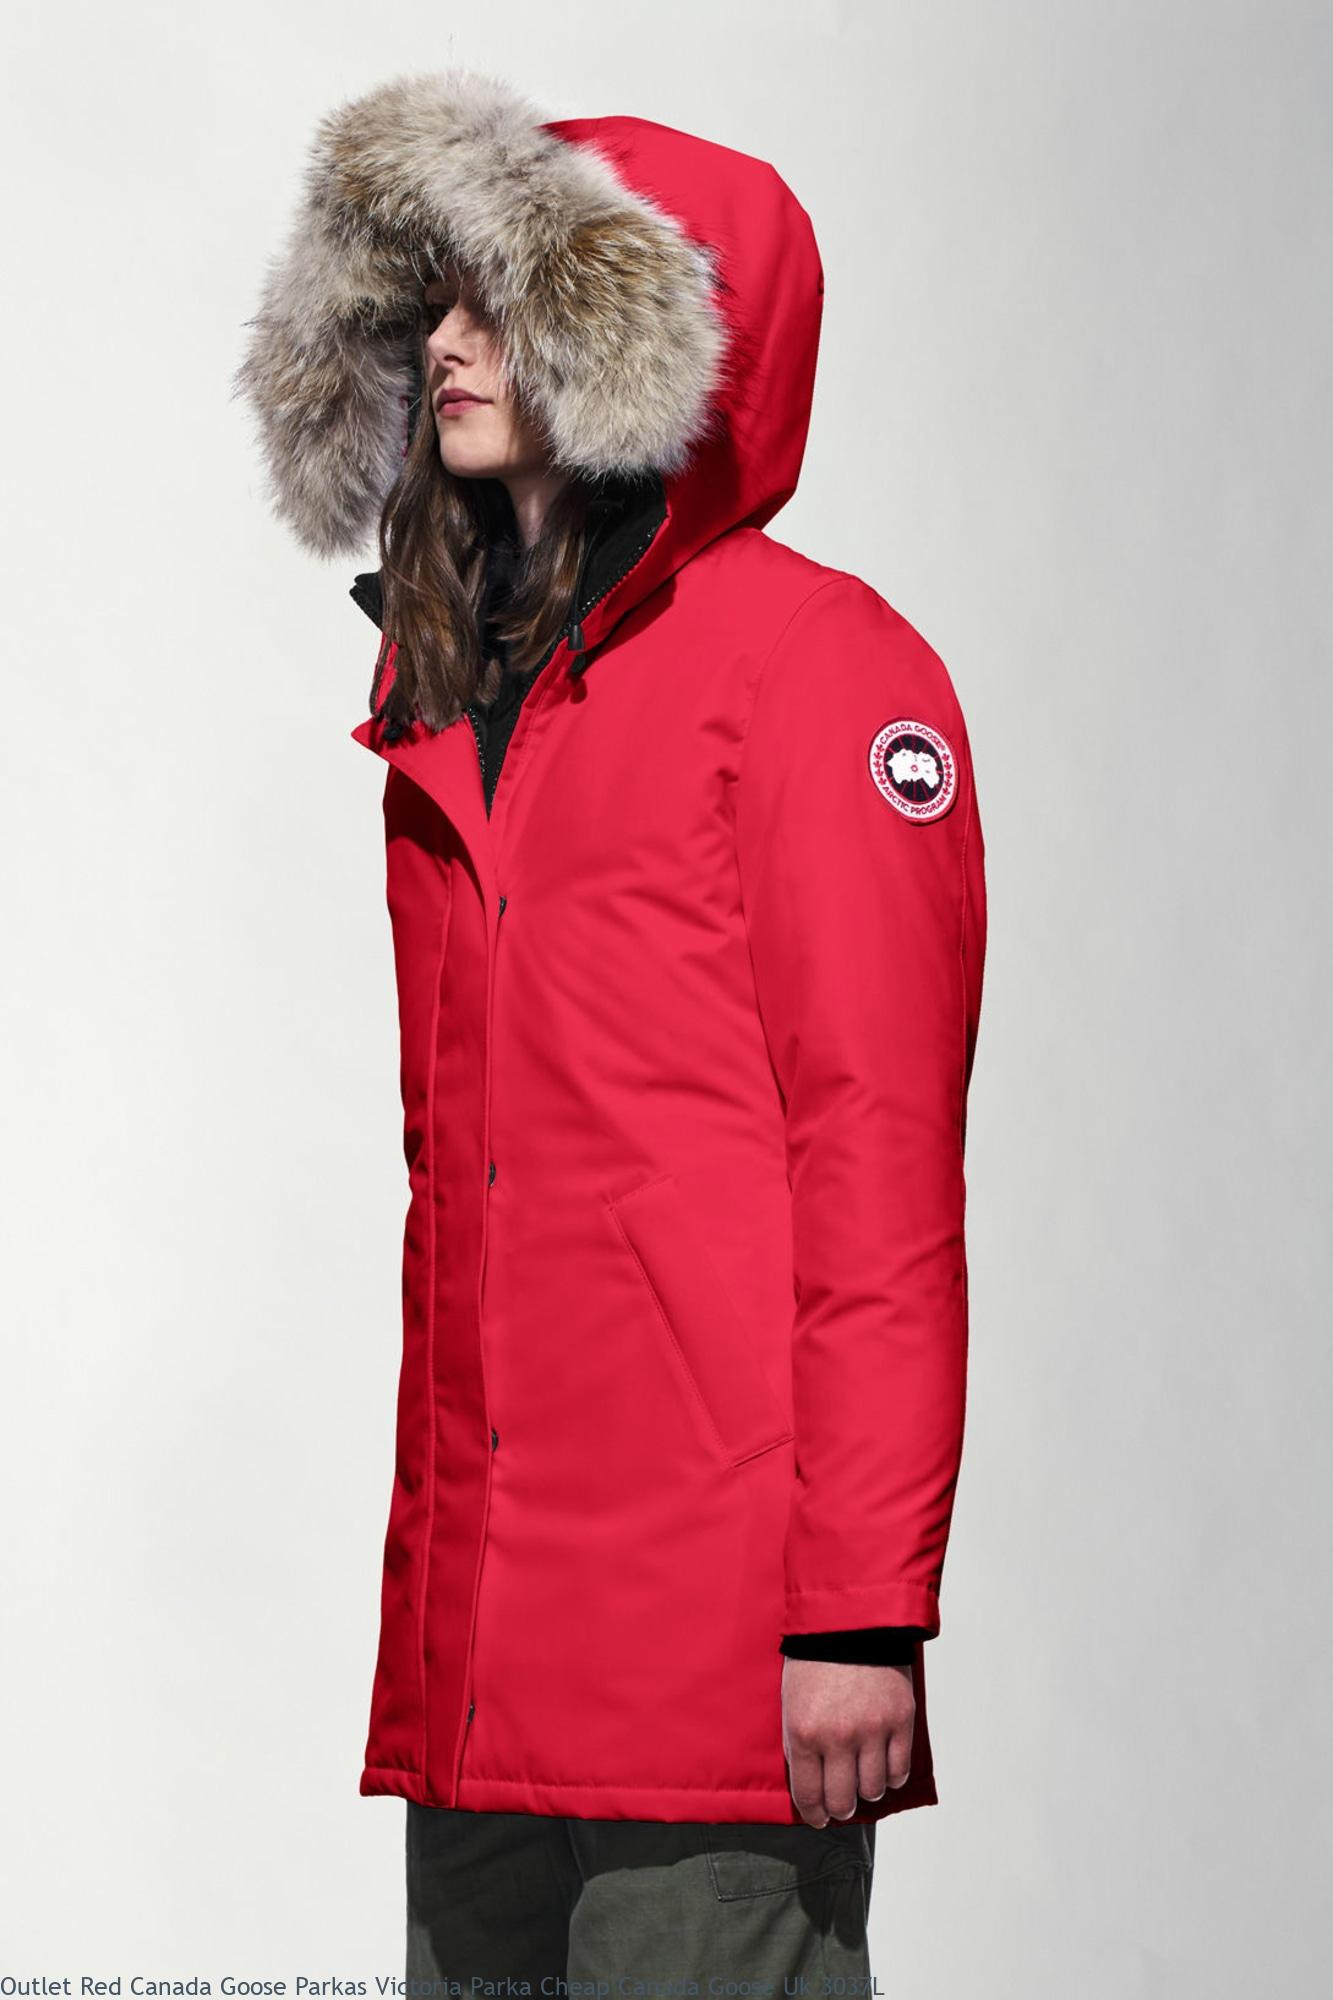 b86db6043b4 Outlet Red Canada Goose Parkas Victoria Parka Cheap Canada Goose Uk 3037L